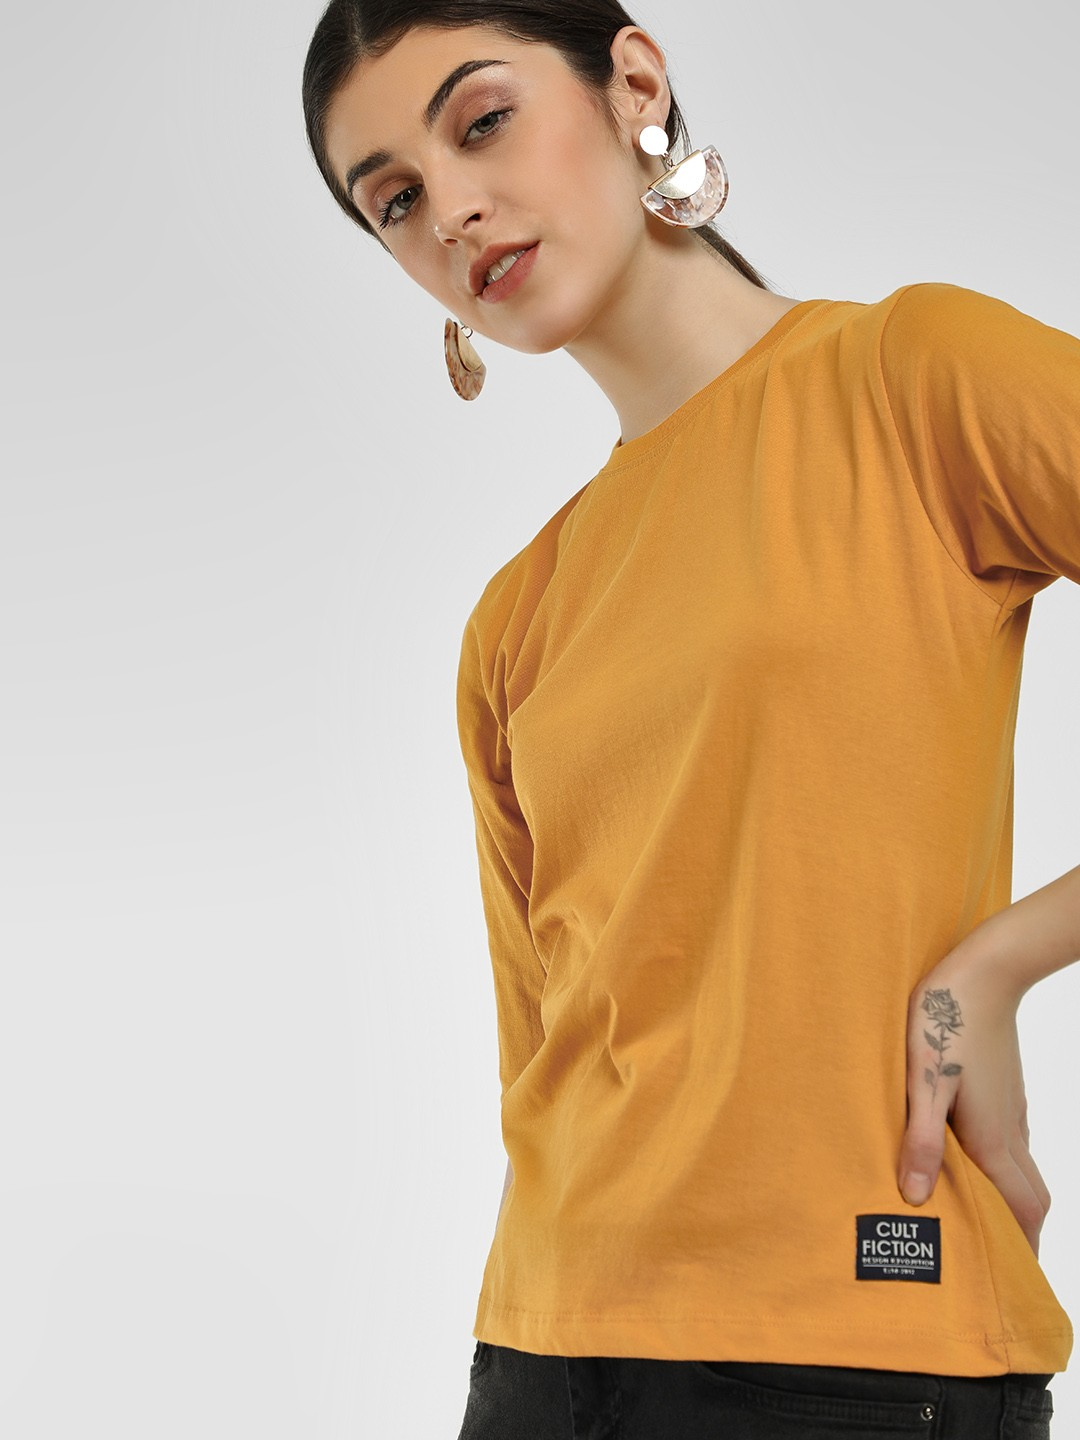 Cult Fiction Yellow Basic Round Neck T-Shirt 1